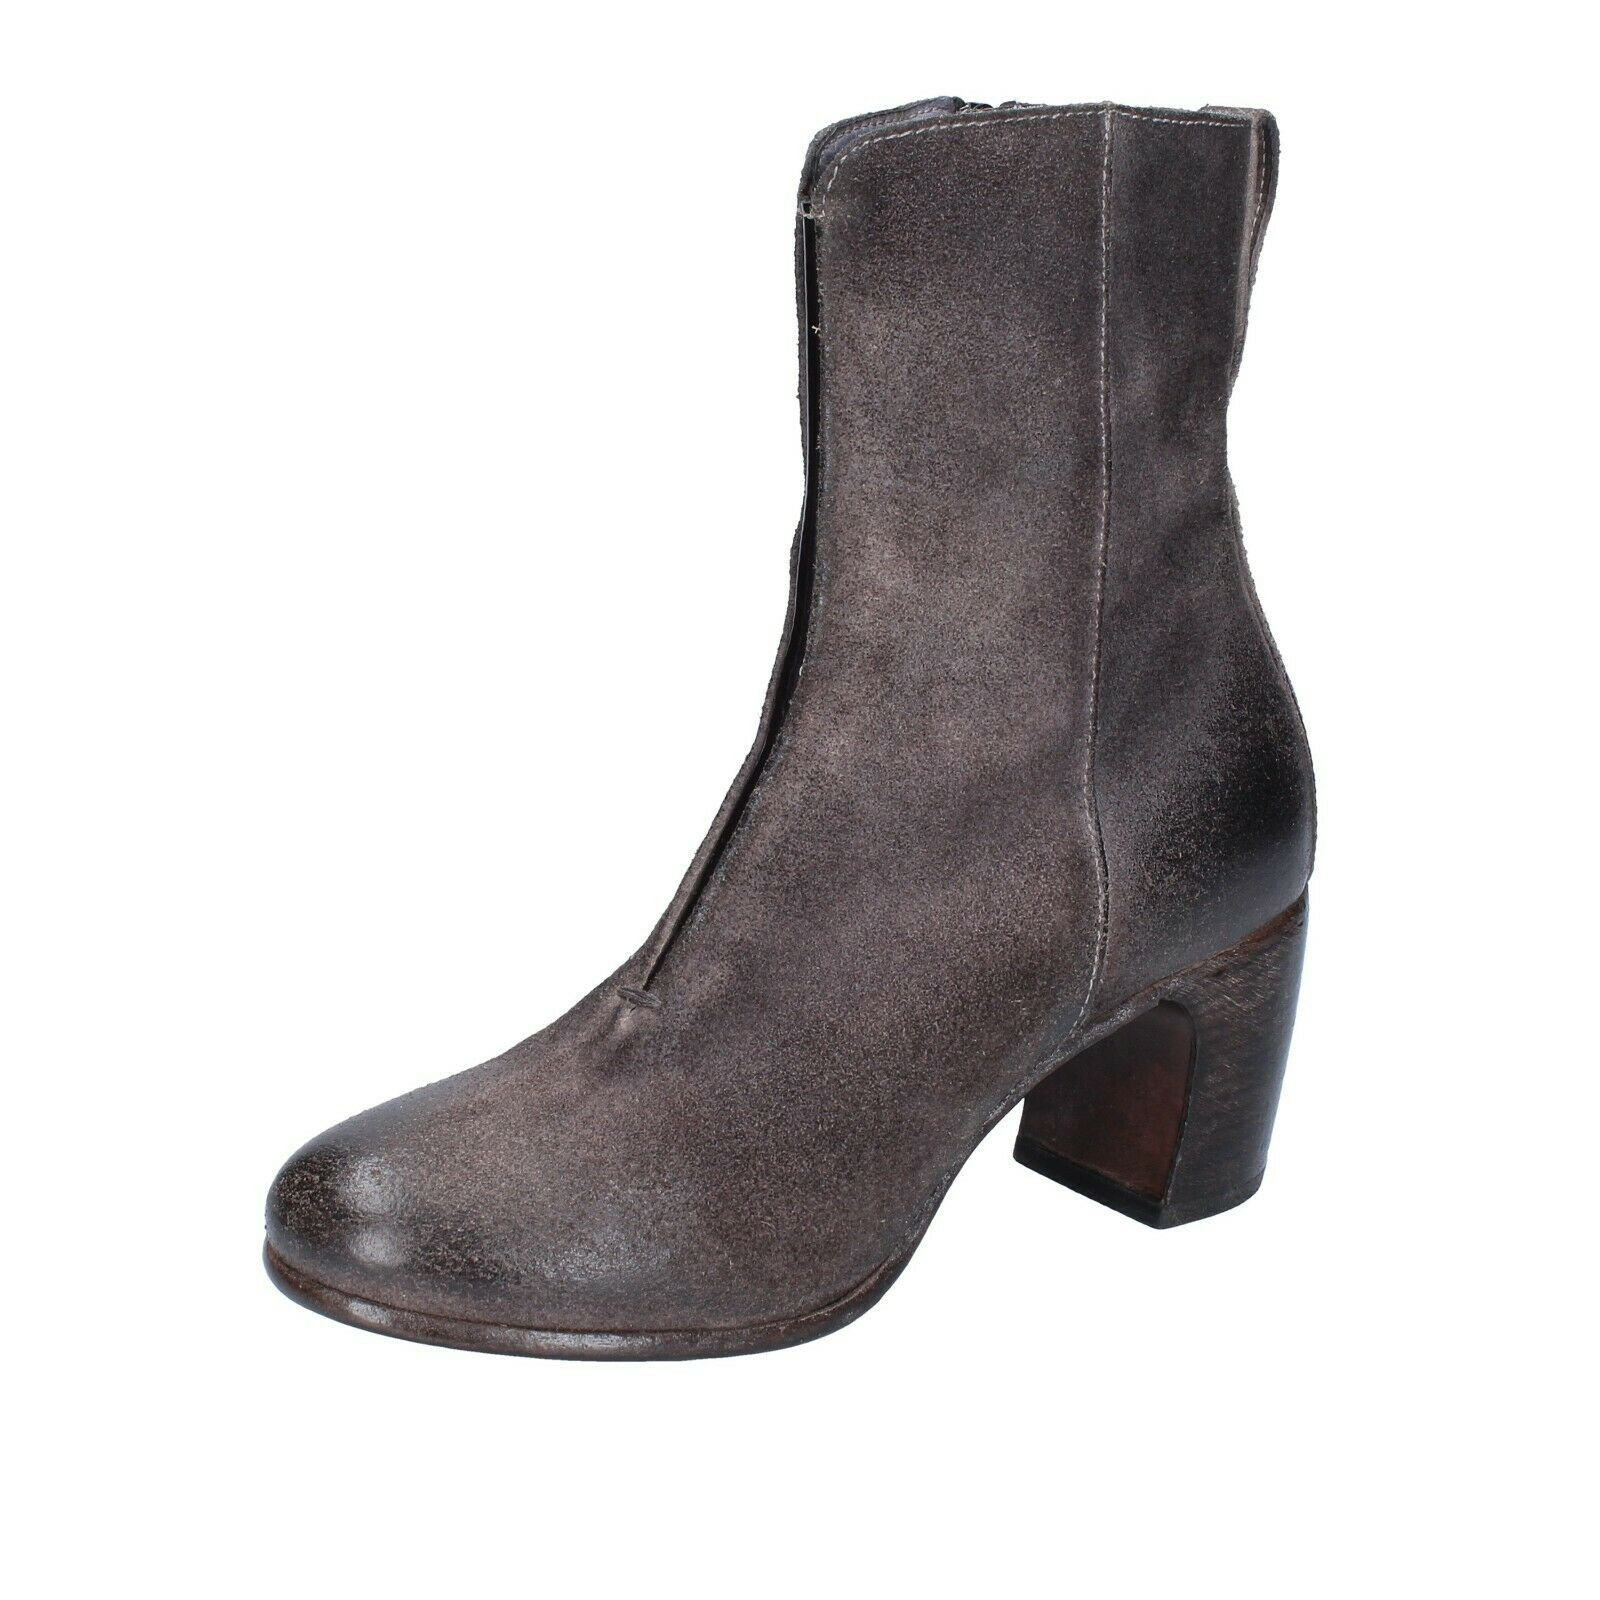 Womens shoes MOMA 37 EU Ankle Boots Grey Suede BS548